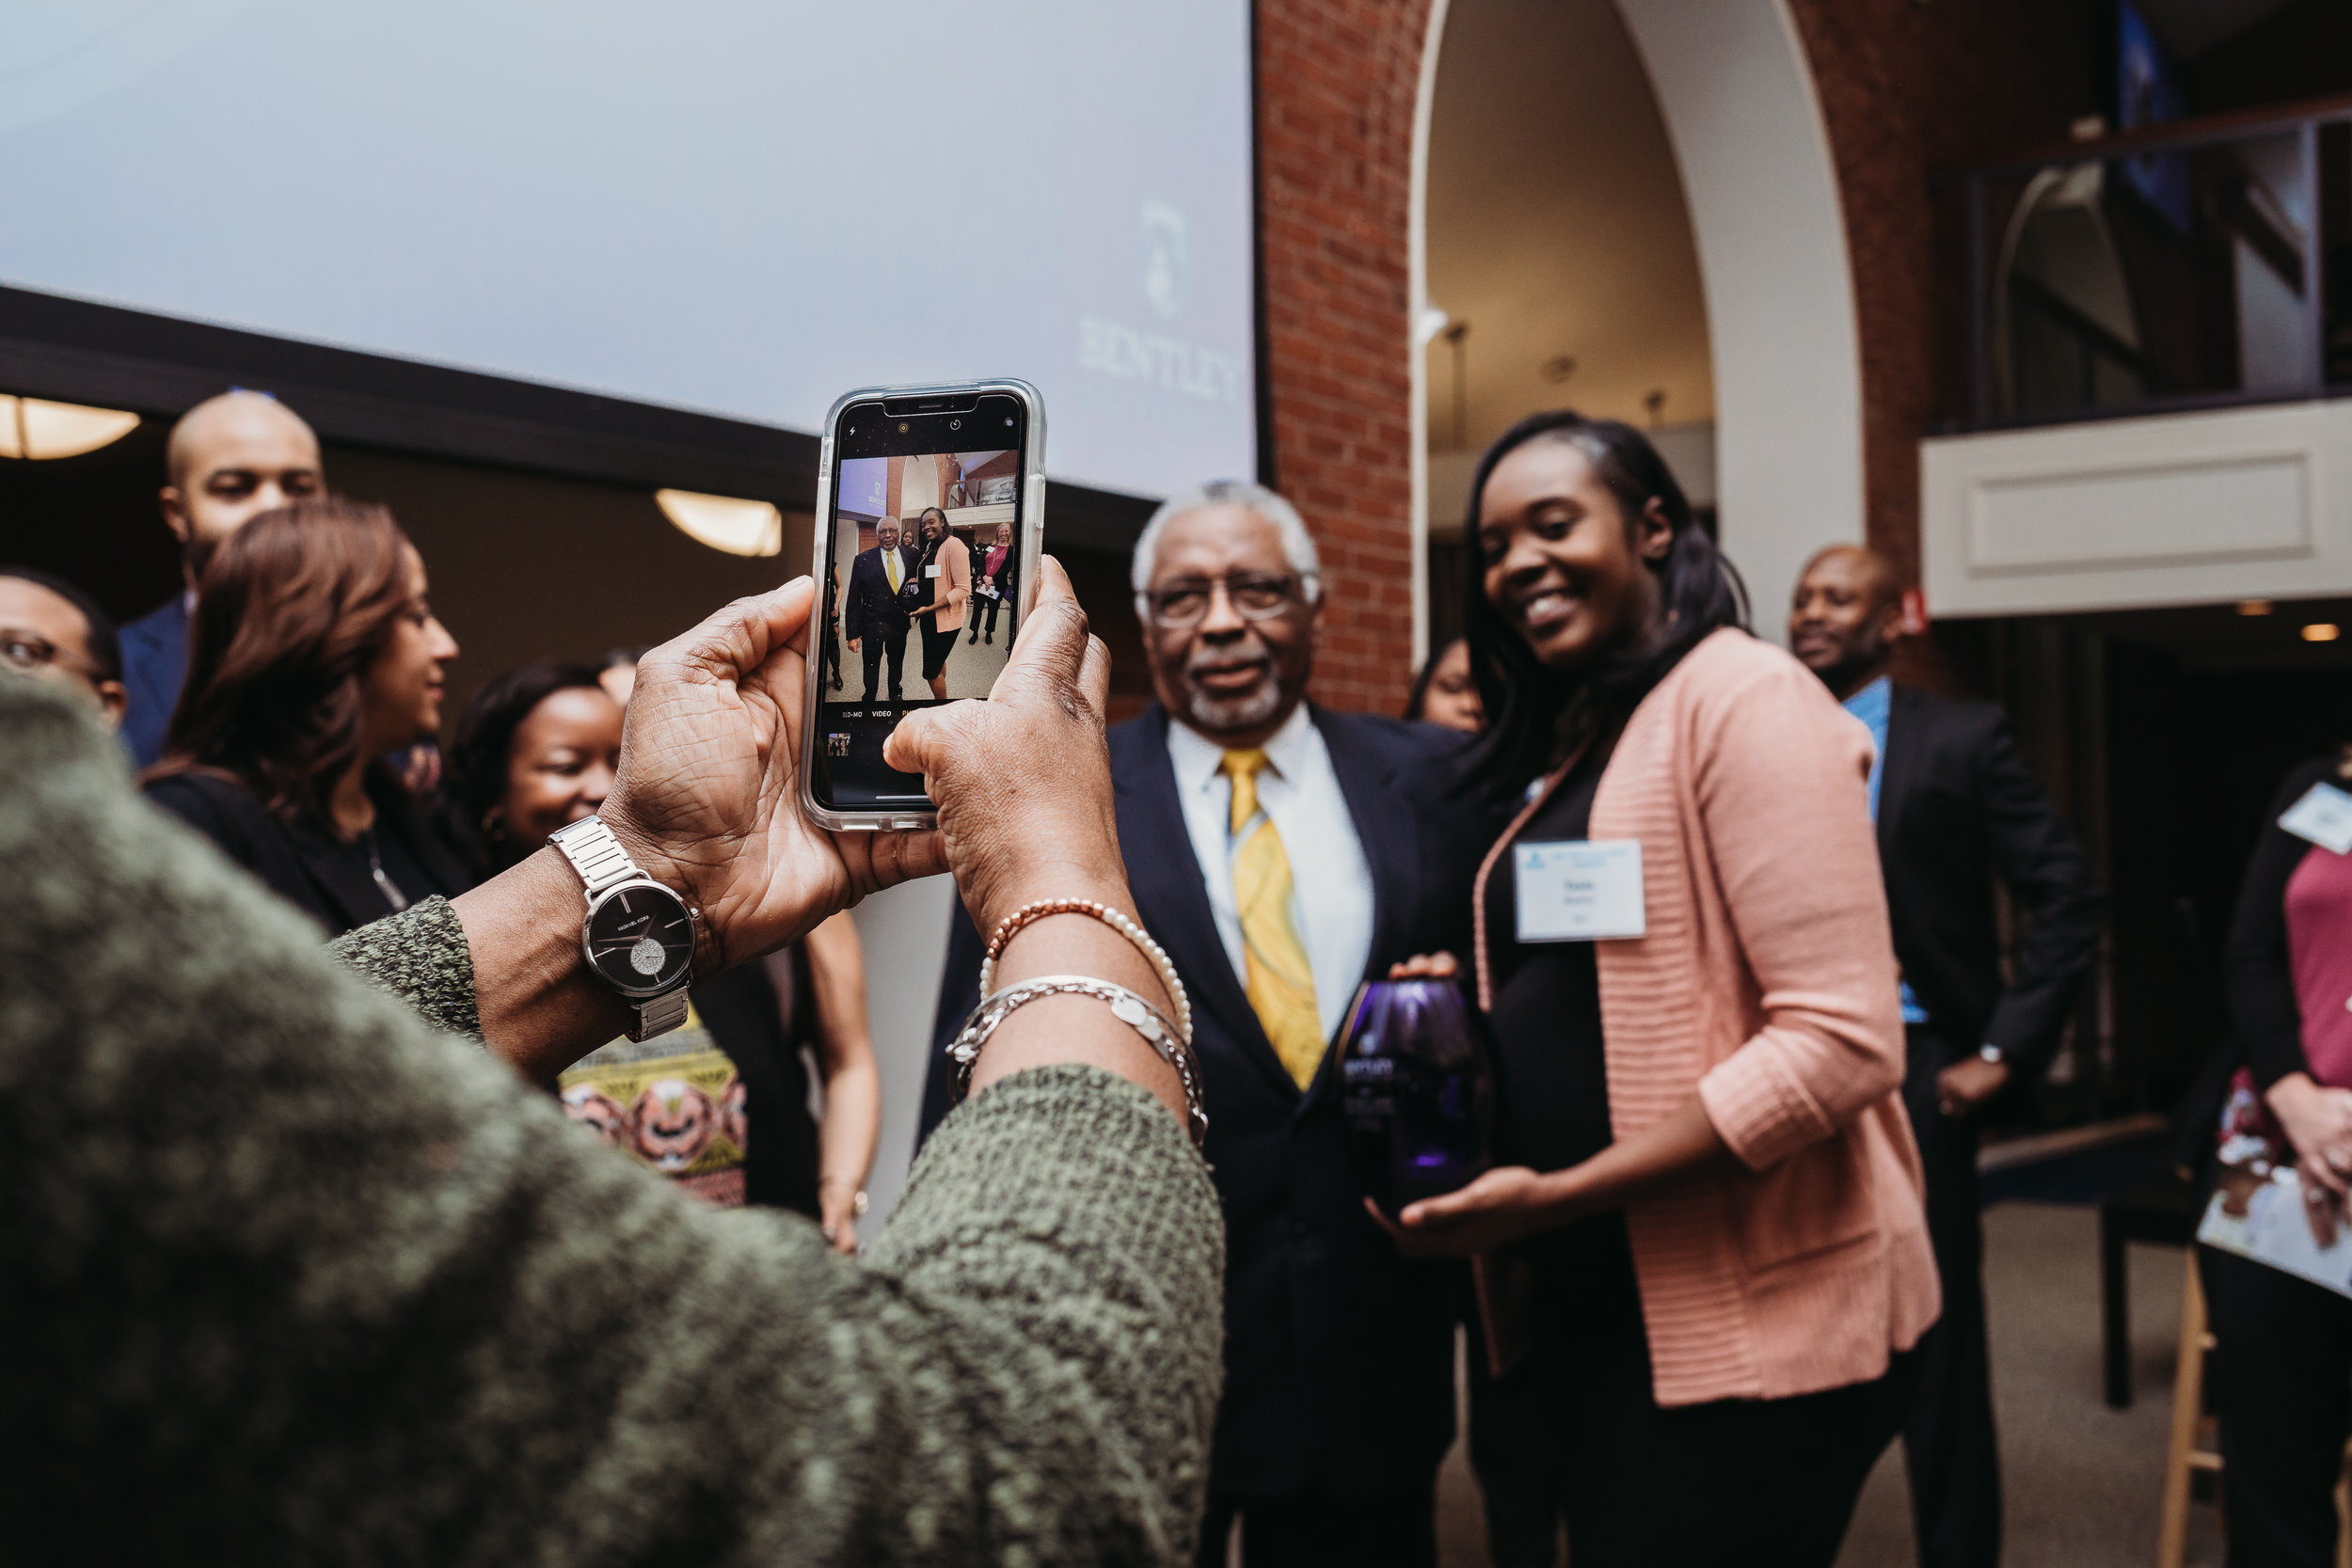 Taking pictures with Earl Avery after the celebration to honor his legacy at Bentley University. Higher education event photography.